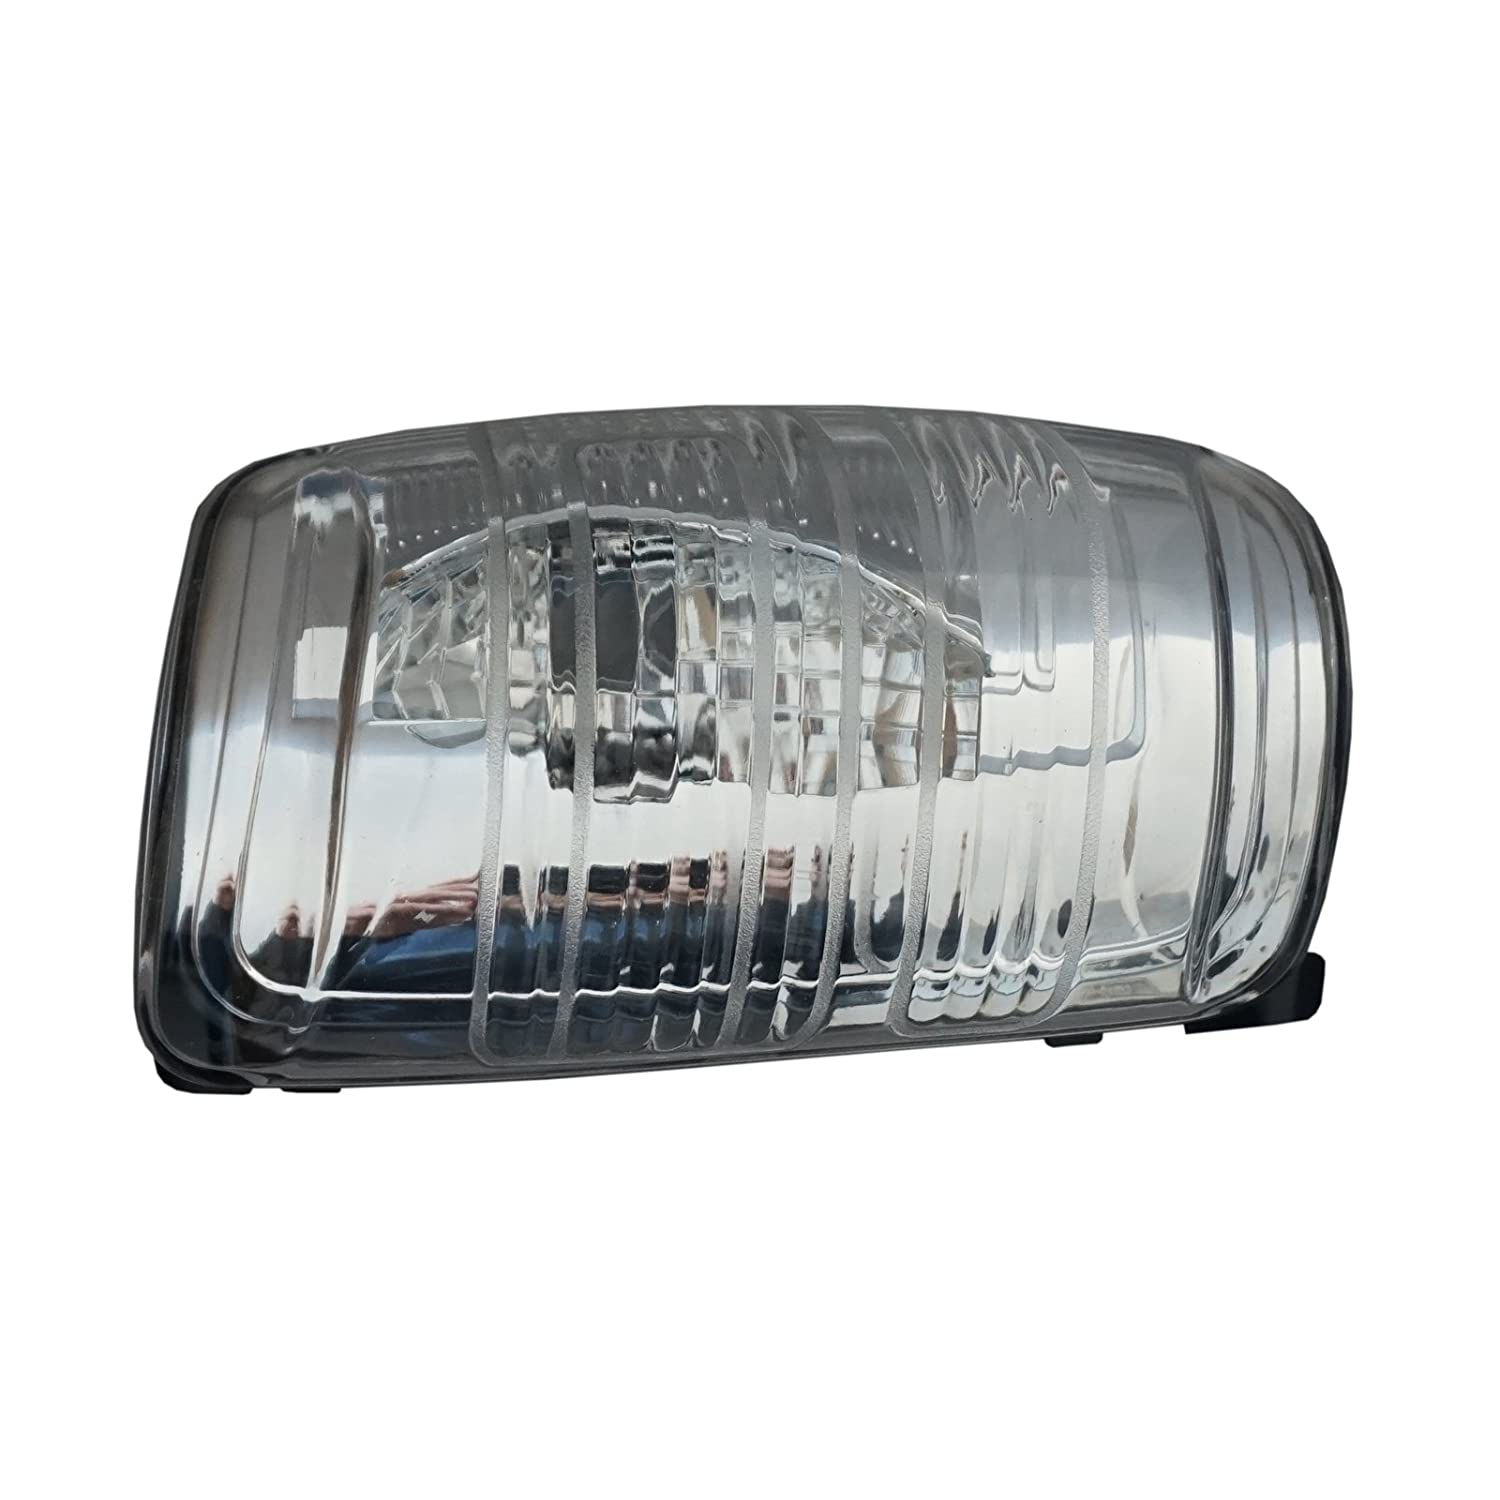 BSP594-1: Side Door Wing Mirror White Indicator Lamp Lens 1847387 Left for Ford Transit 2013-On Bross Auto Parts